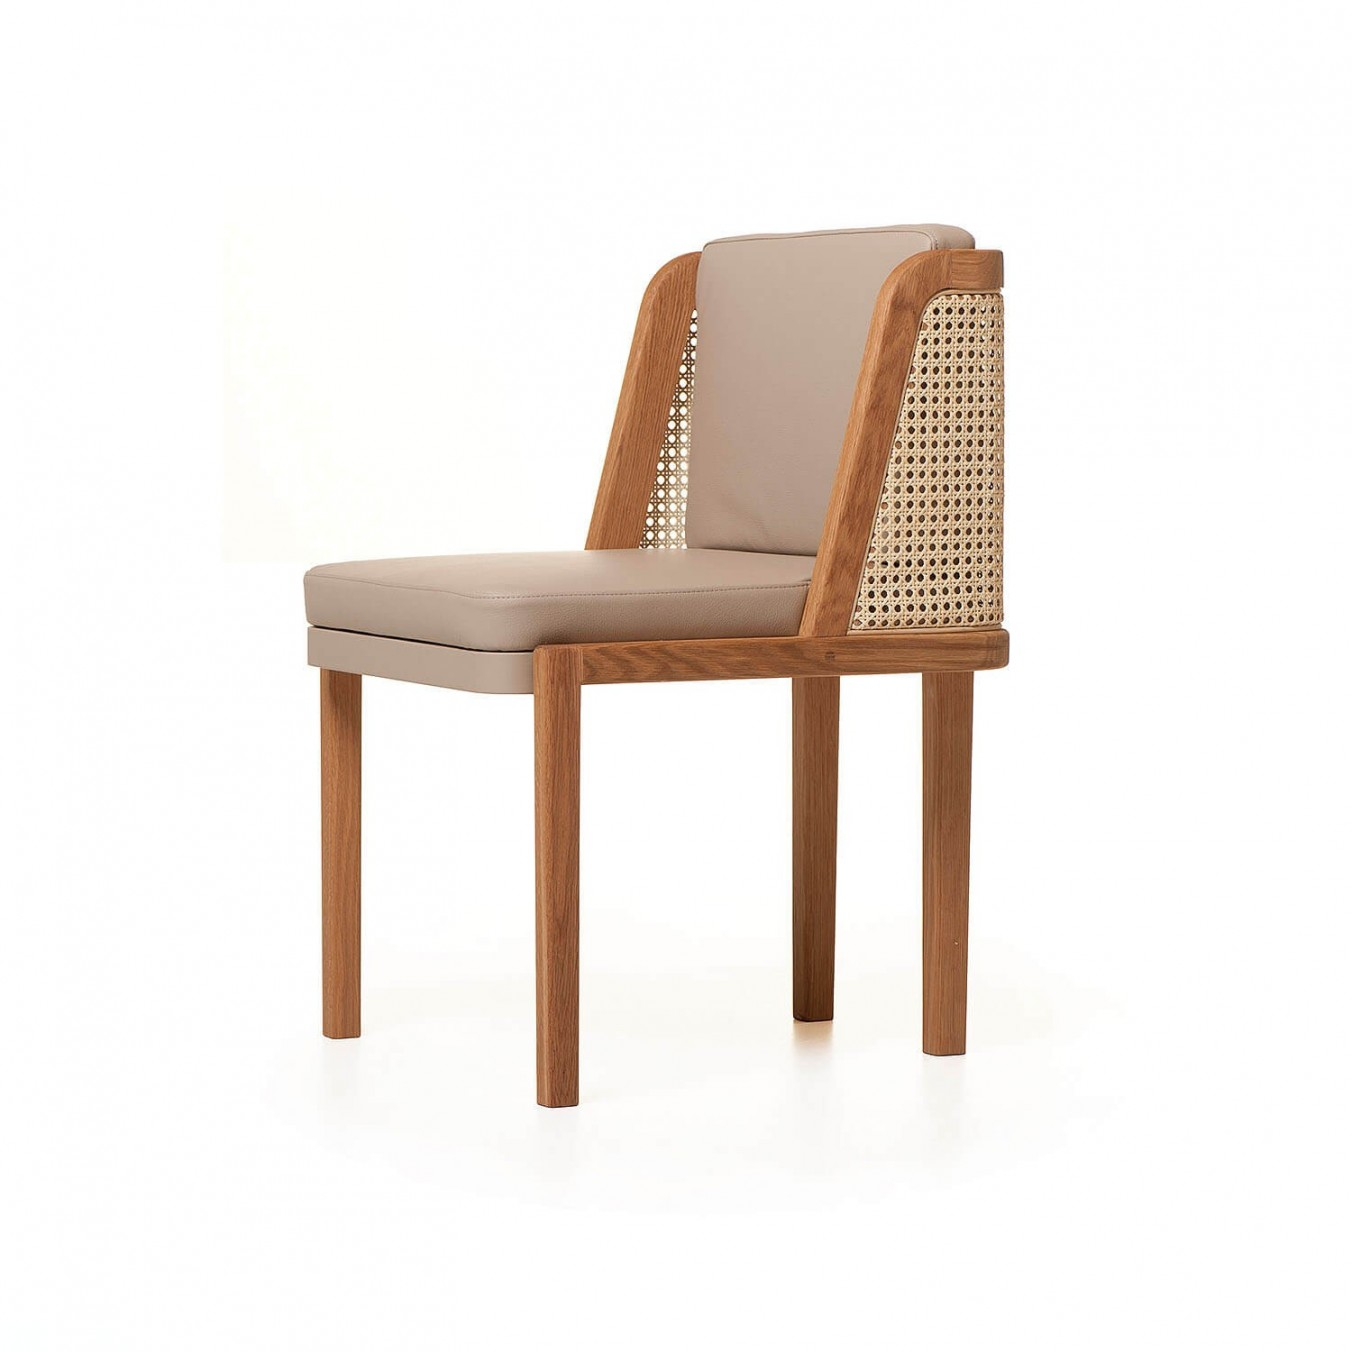 Outstanding Throne Dining Chair With Rattan Kooku Gmtry Best Dining Table And Chair Ideas Images Gmtryco